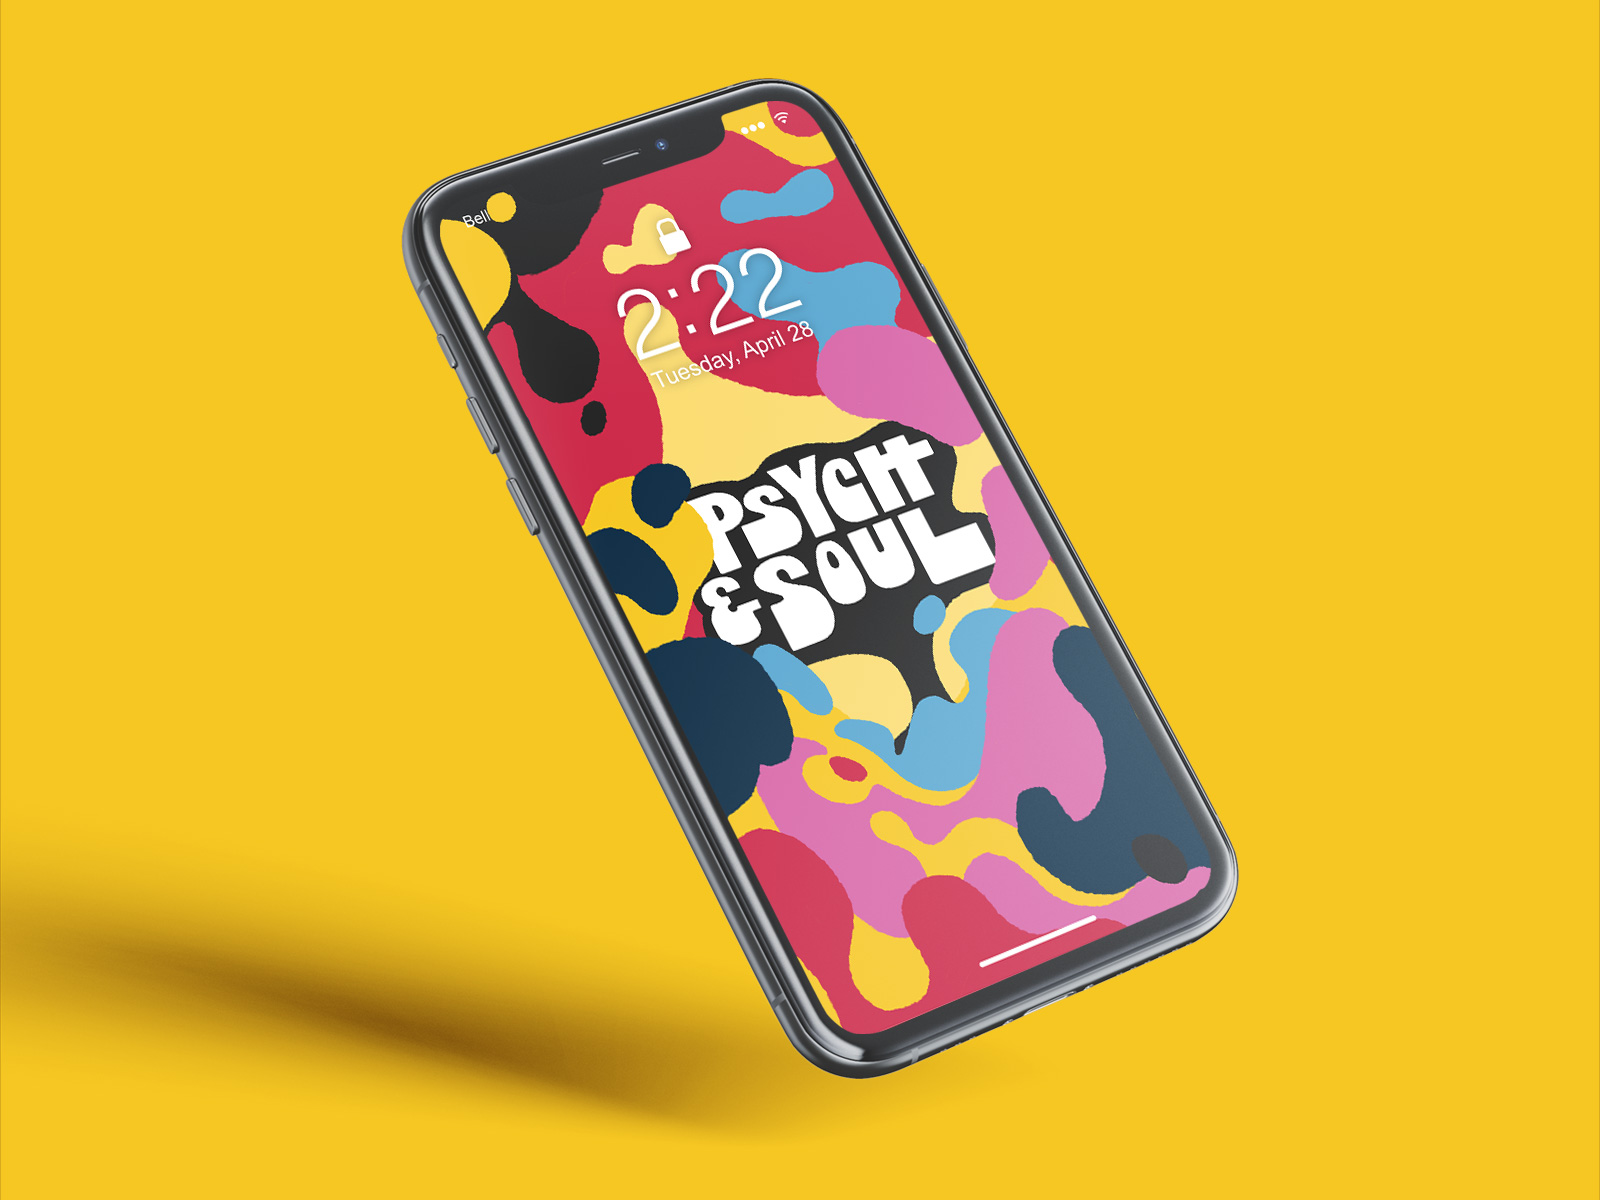 phone wallpaper design for psych and soul music festival